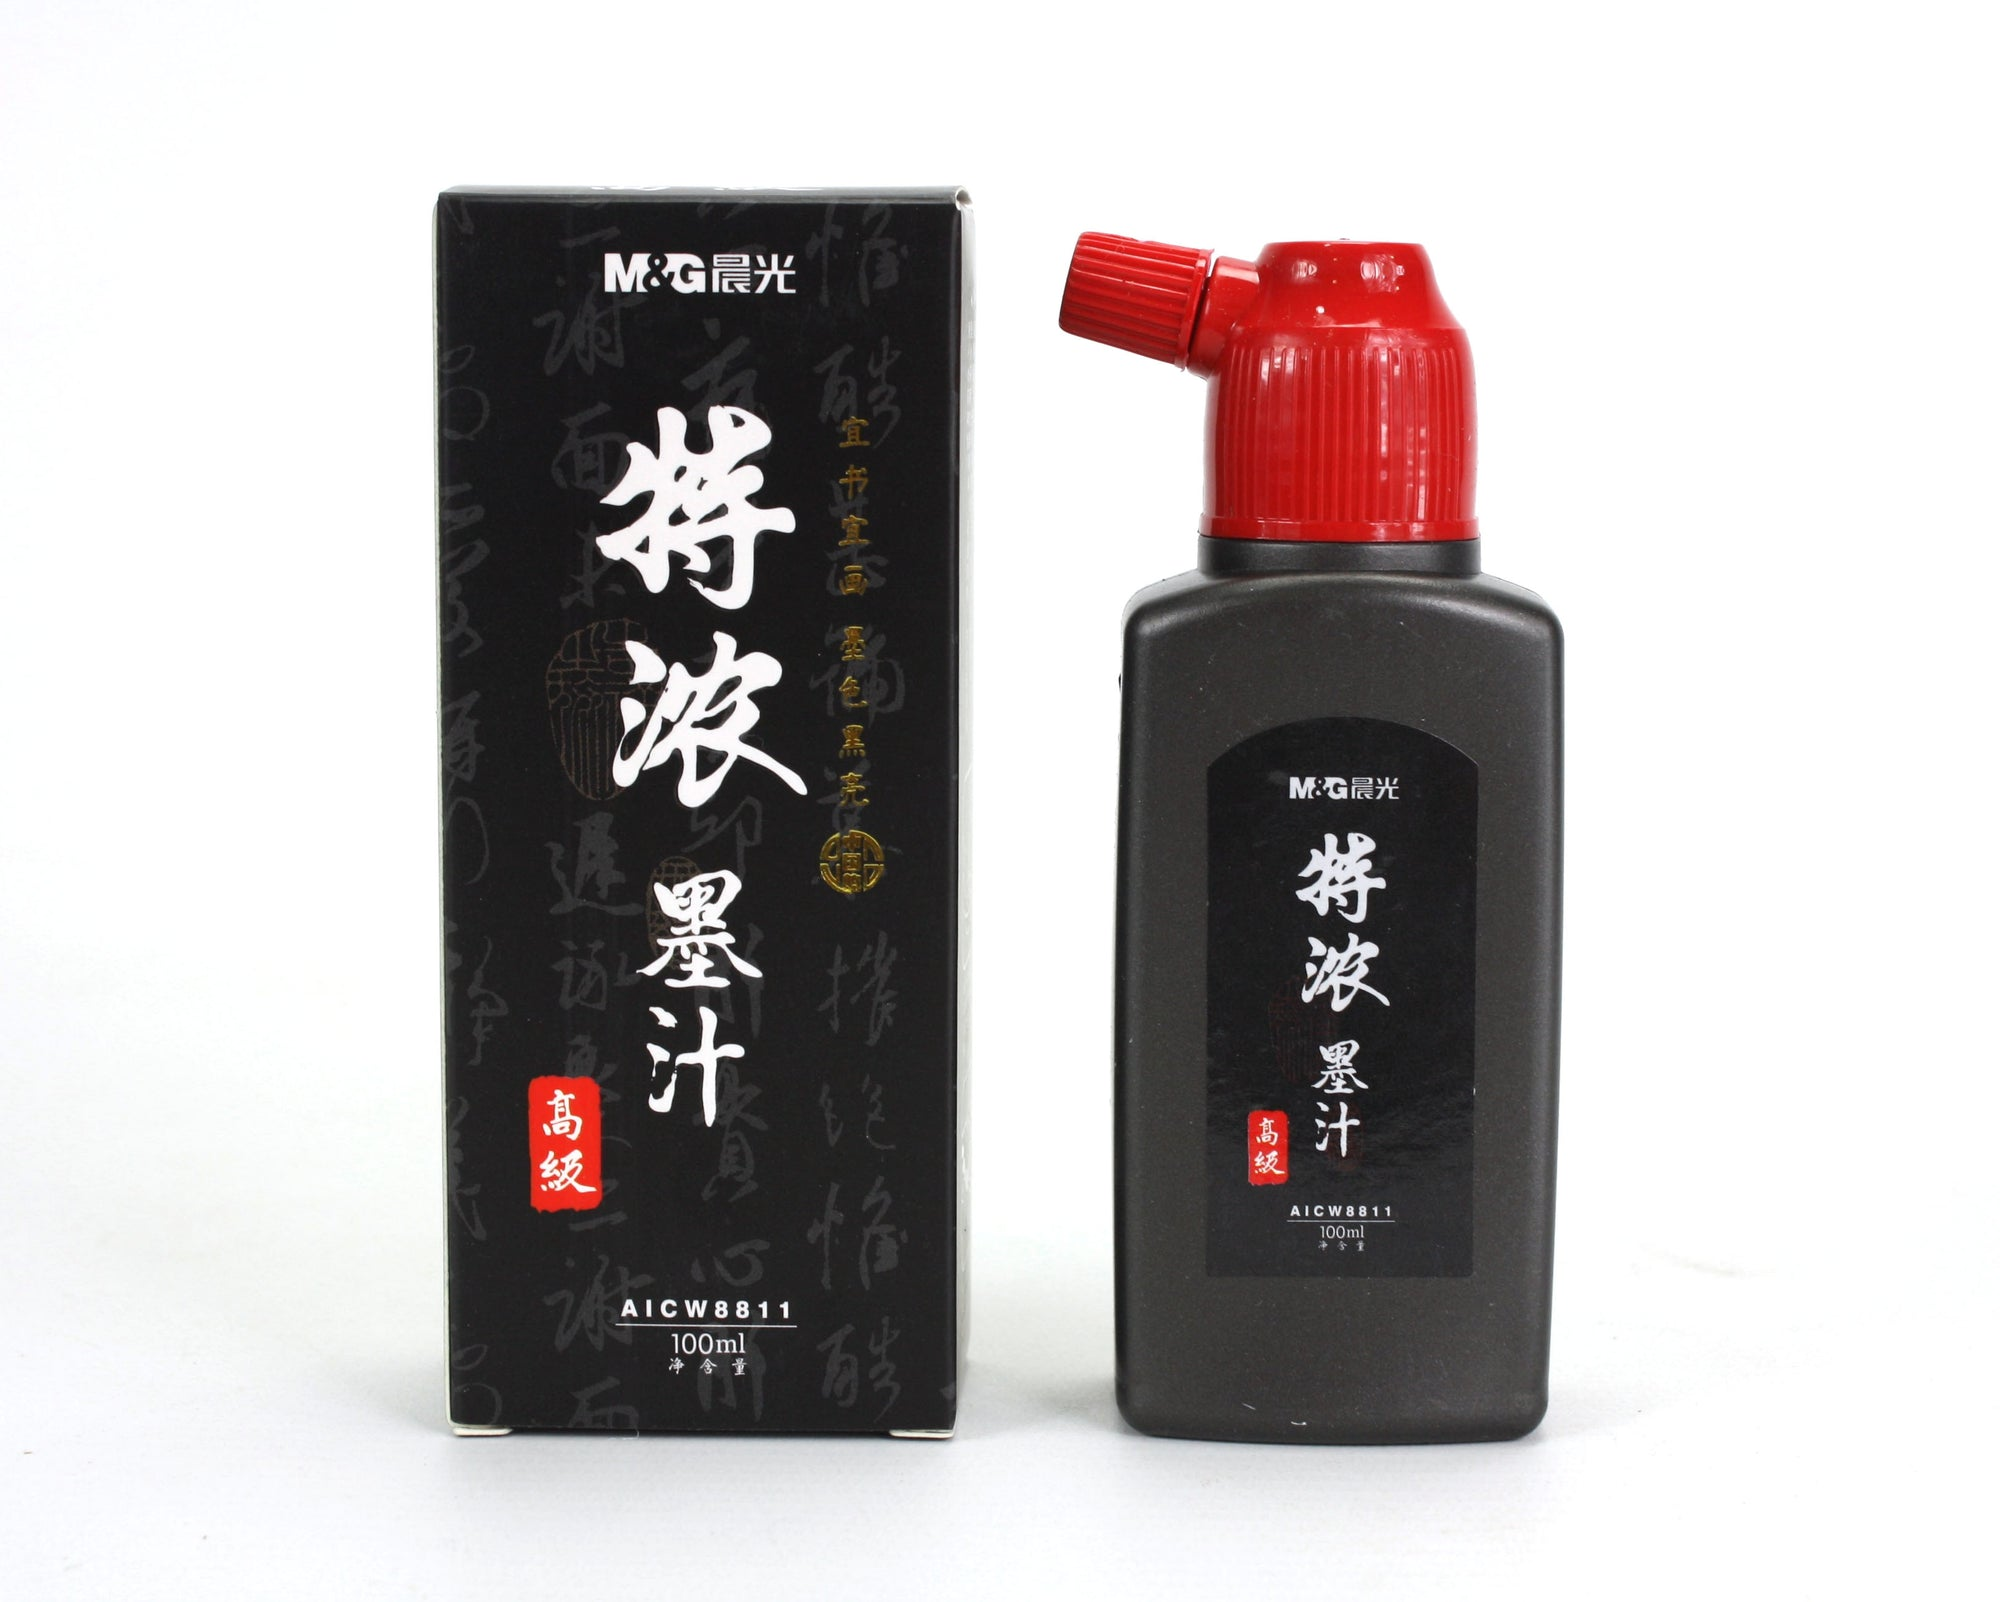 Chinese sumi-e Calligraphy Drawing Ink, Black, AICW8811, from M&G - farangshop-co